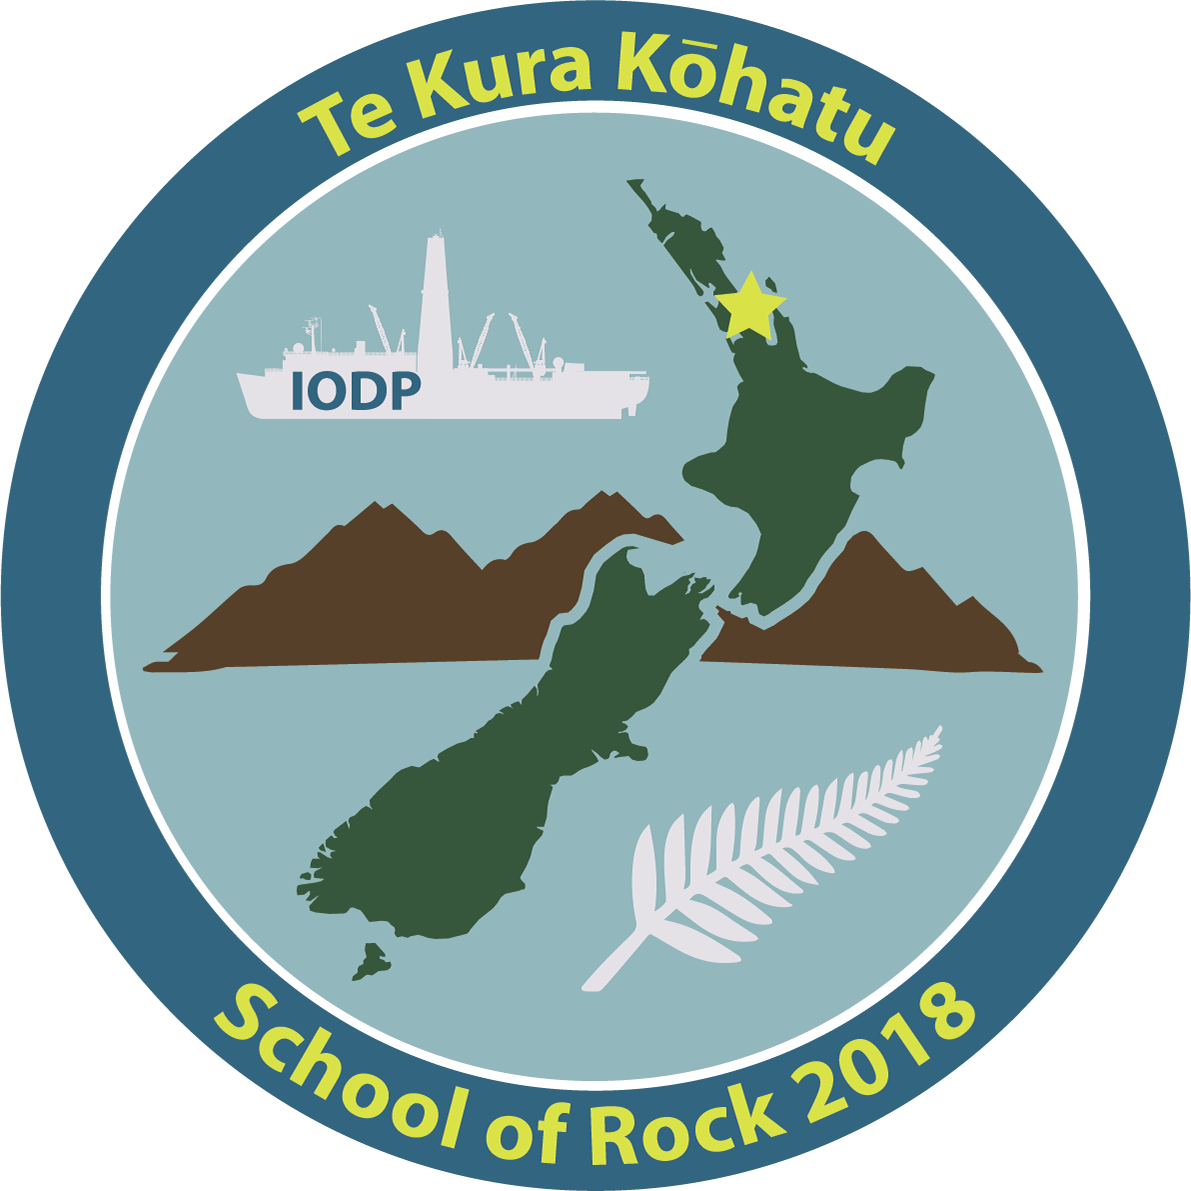 Te Kura Kohatu School Of Rock 2018 Joides Resolution